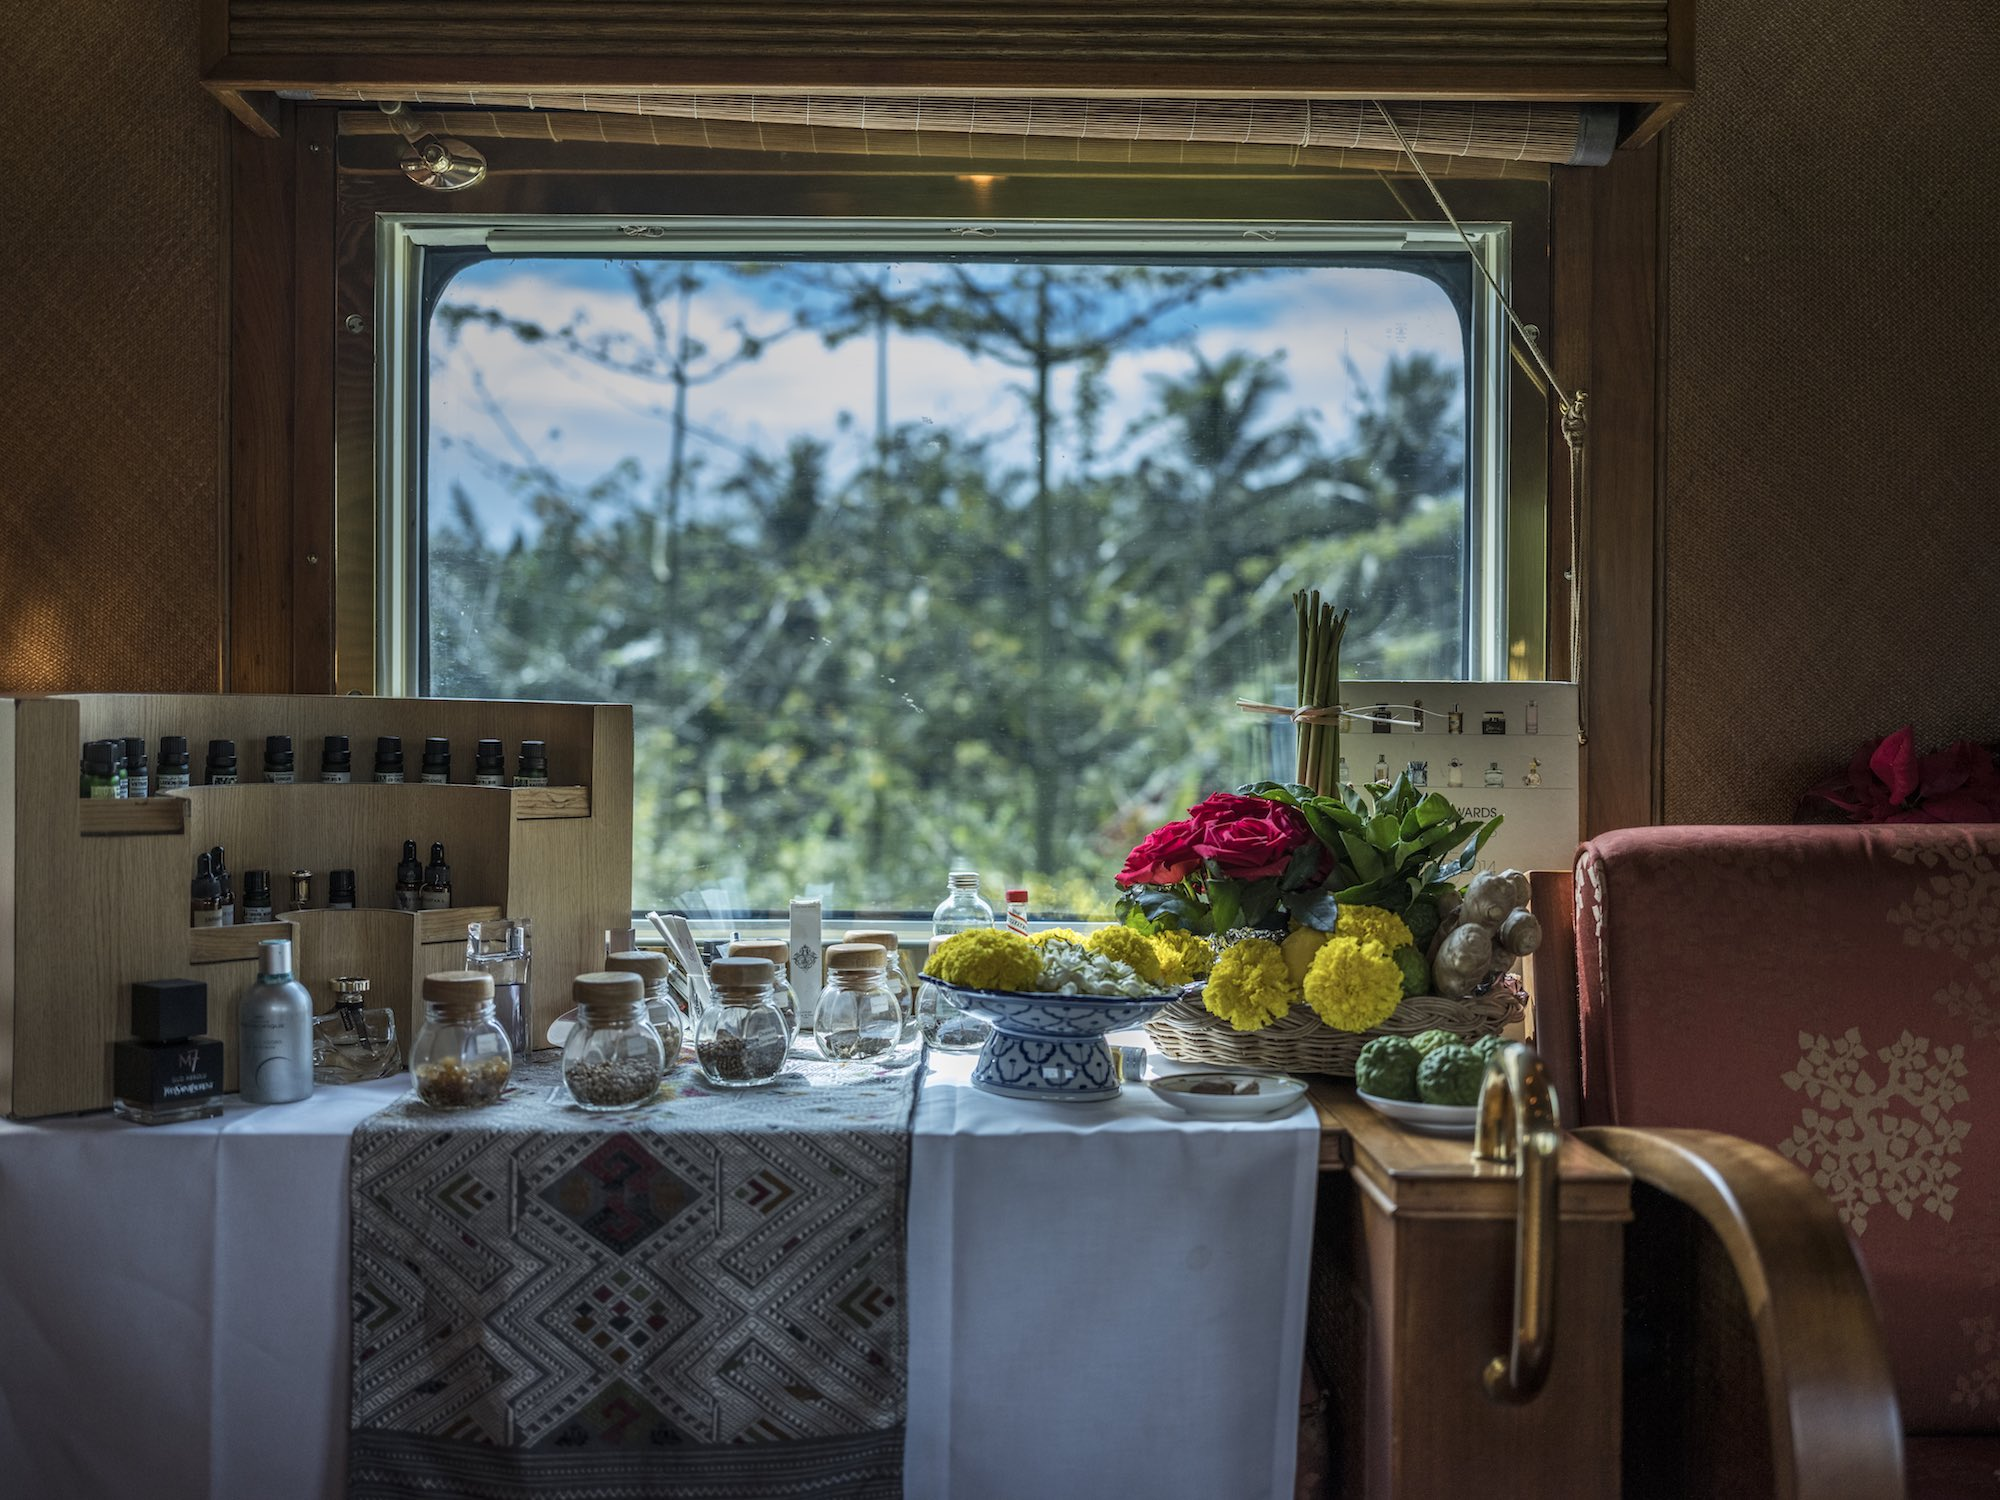 Hospitality restaurant bar hotel Photography services singapore commercial - Belmond Eastern Oriental Express train